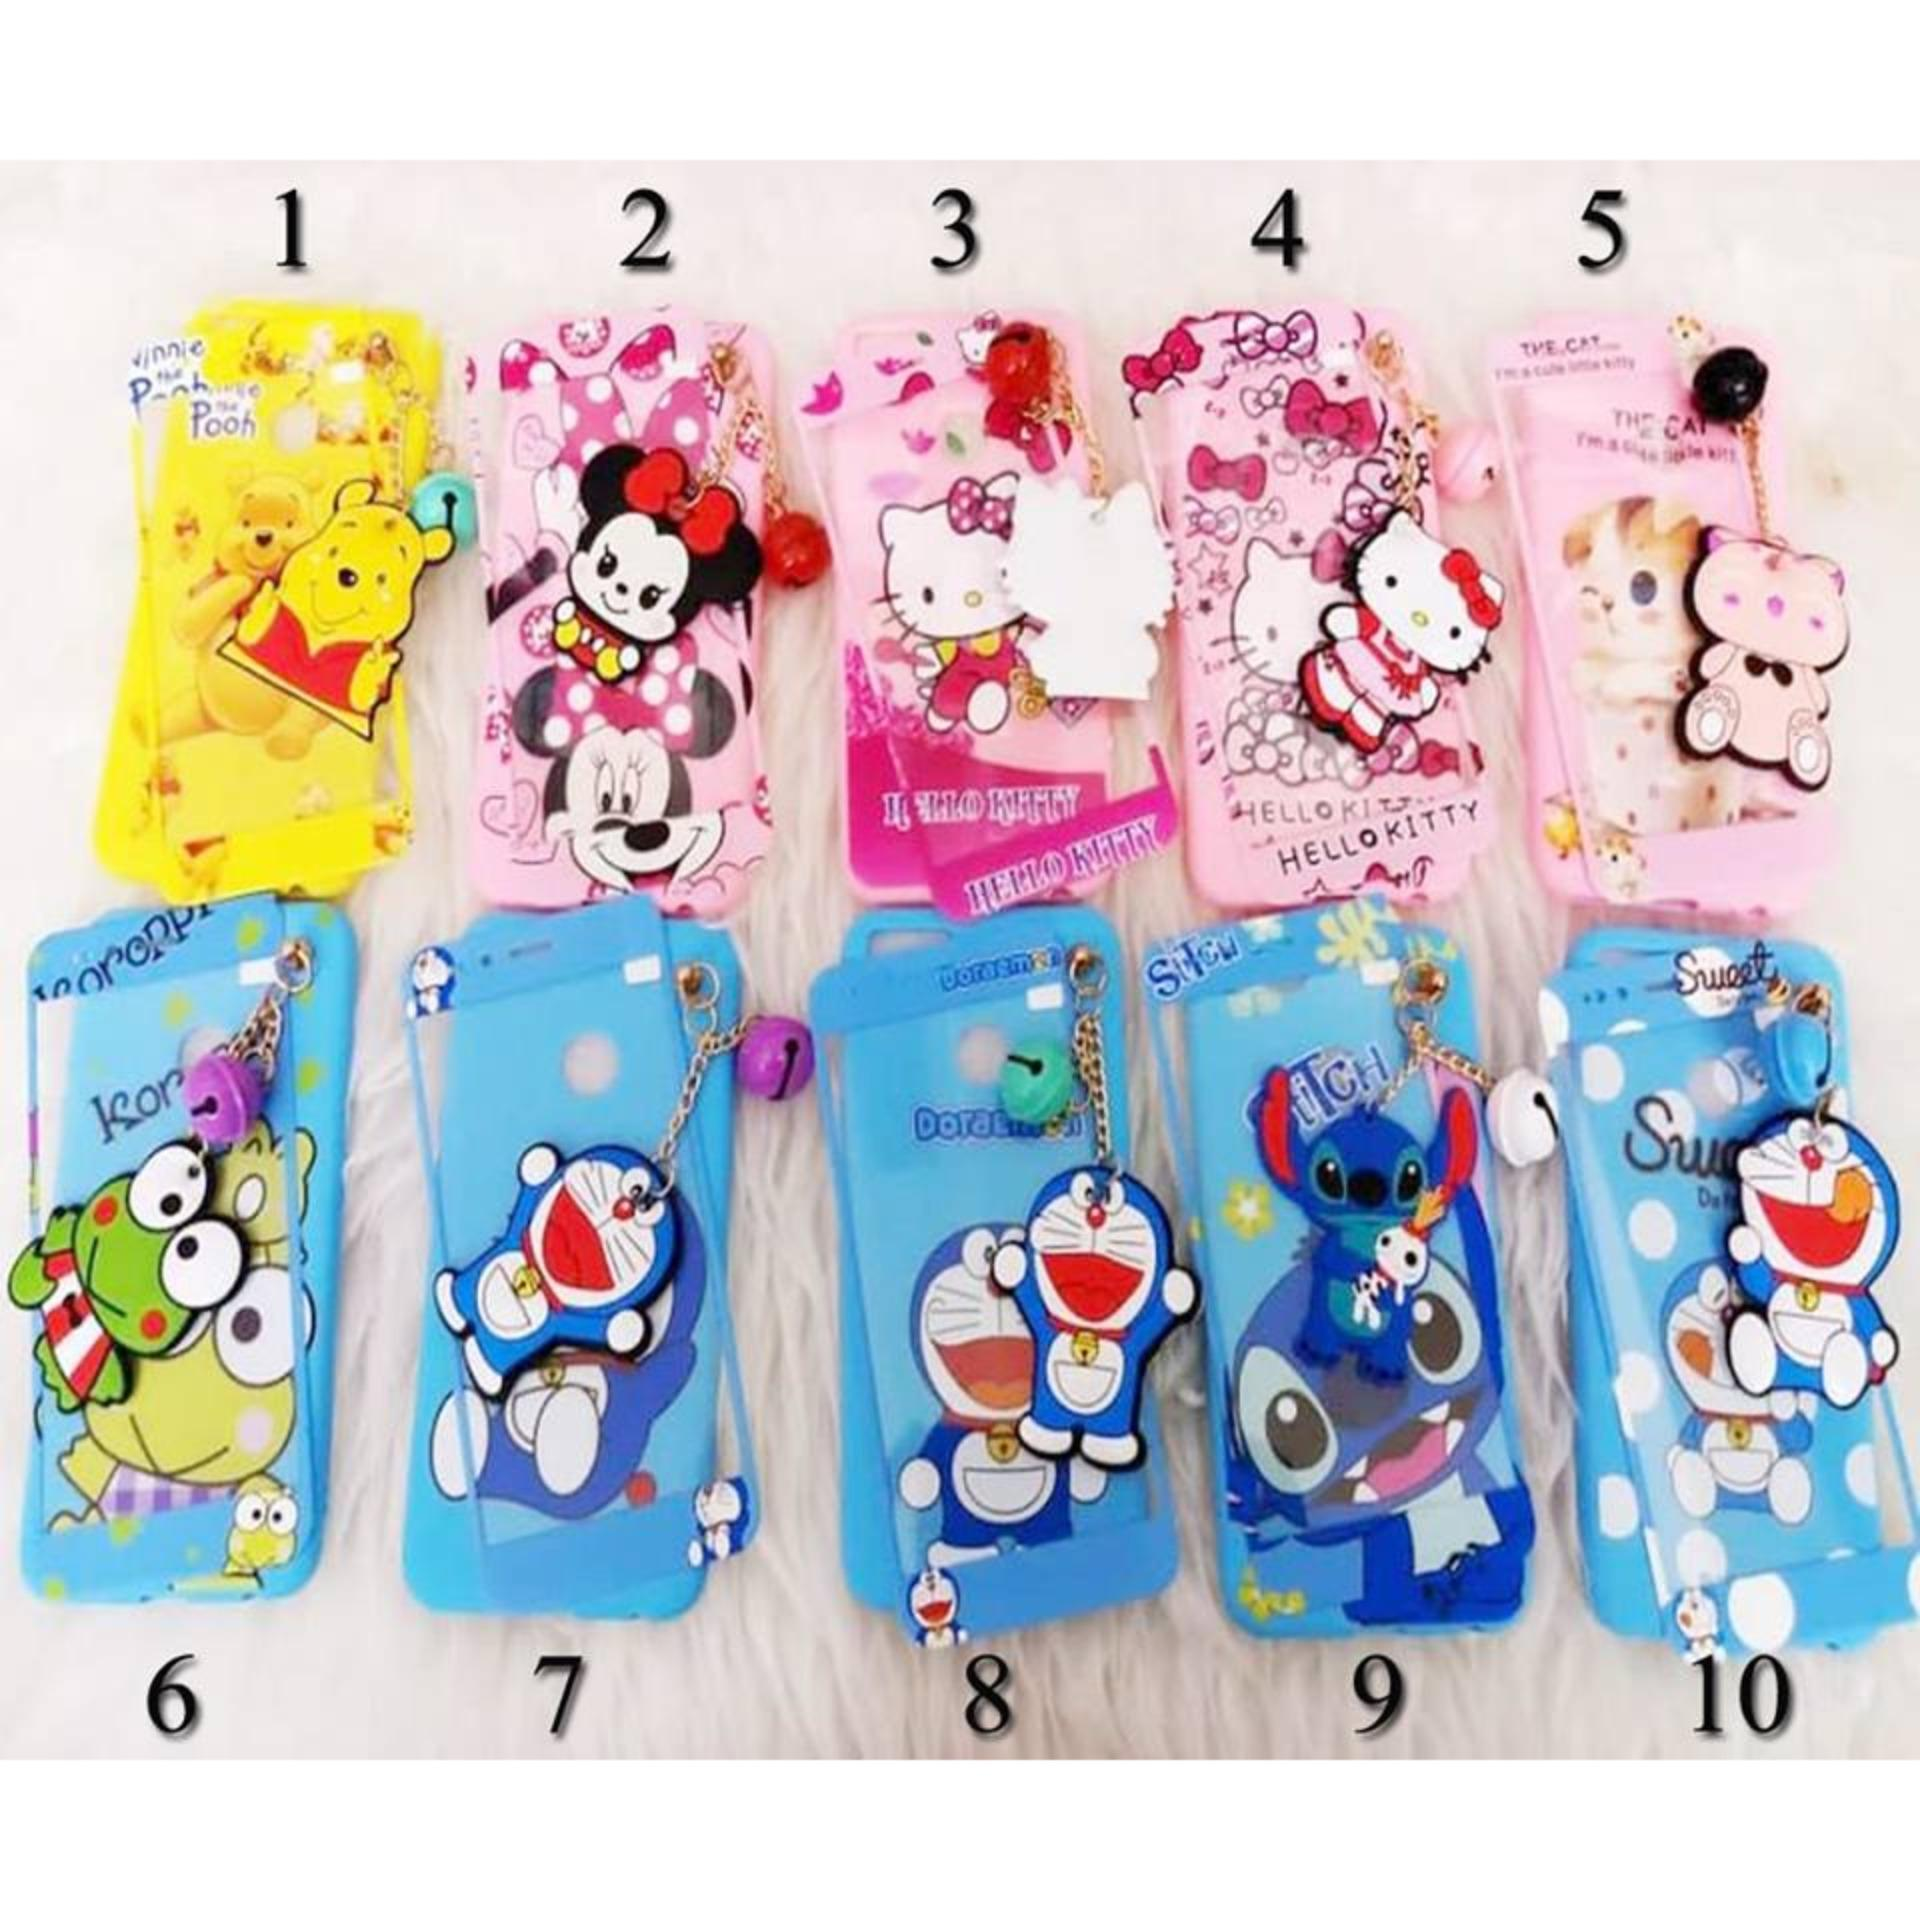 Softcase 4Dimensi Karakter BONEKA GANTUNGAN KACA For OPPO A3S Free Tempered Glass 360 Motif Senada Case